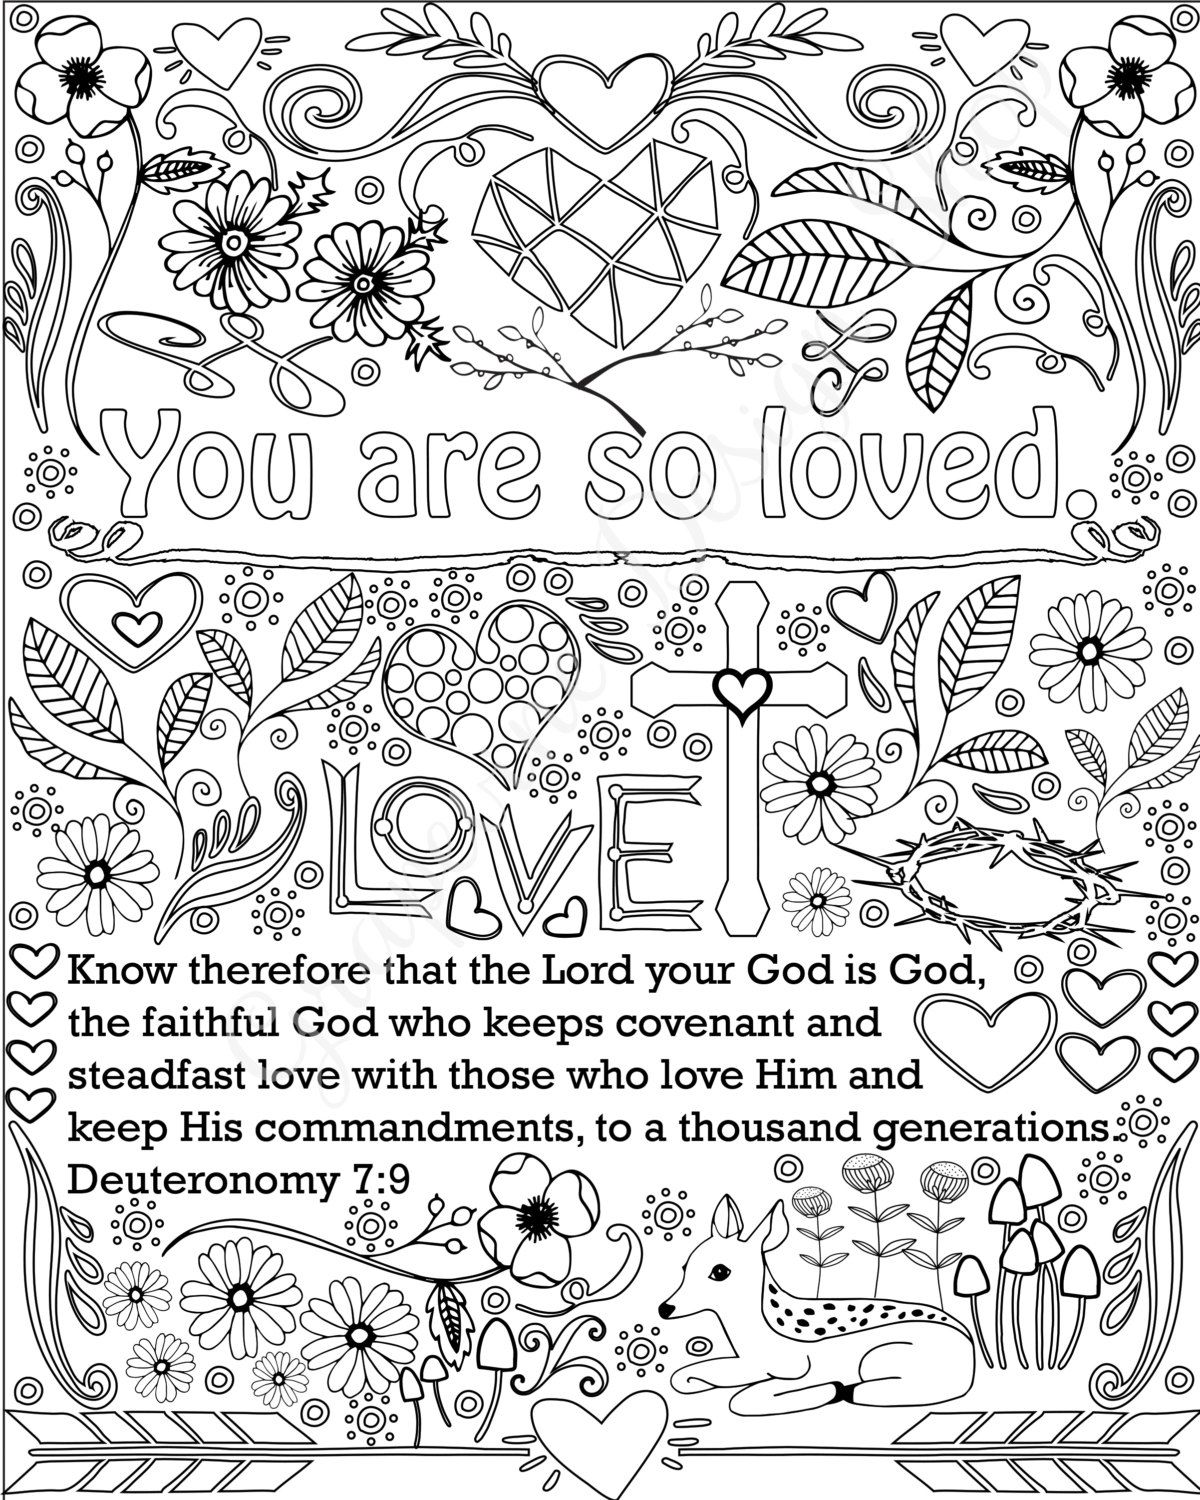 Coloring pages bible verses - Encouraging Words And Bible Verse Coloring Pages Set Of 5 Instant Download Printable Christian Coloring Pdf Kid Or Adult Coloring Sheets